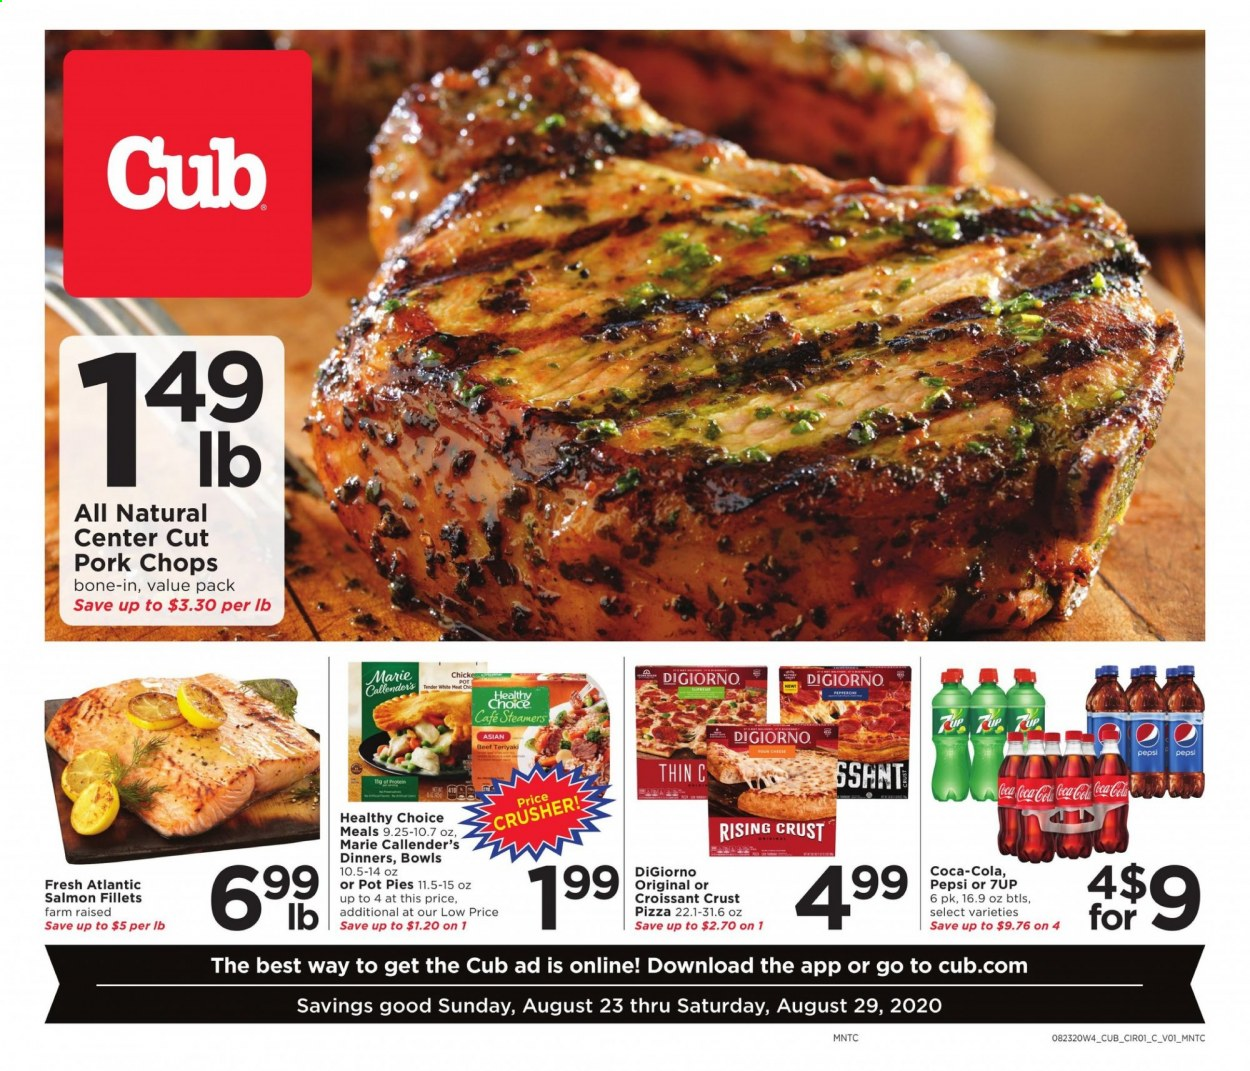 Cub Foods Flyer - 08.23.2020 - 08.29.2020 - Sales products - beef meat, bowl, coca-cola, croissants, salmon, teriyaki, pizza, pork chops, pork meat, pot, pot pies, protein, pepsi, cheese, meat. Page 1.